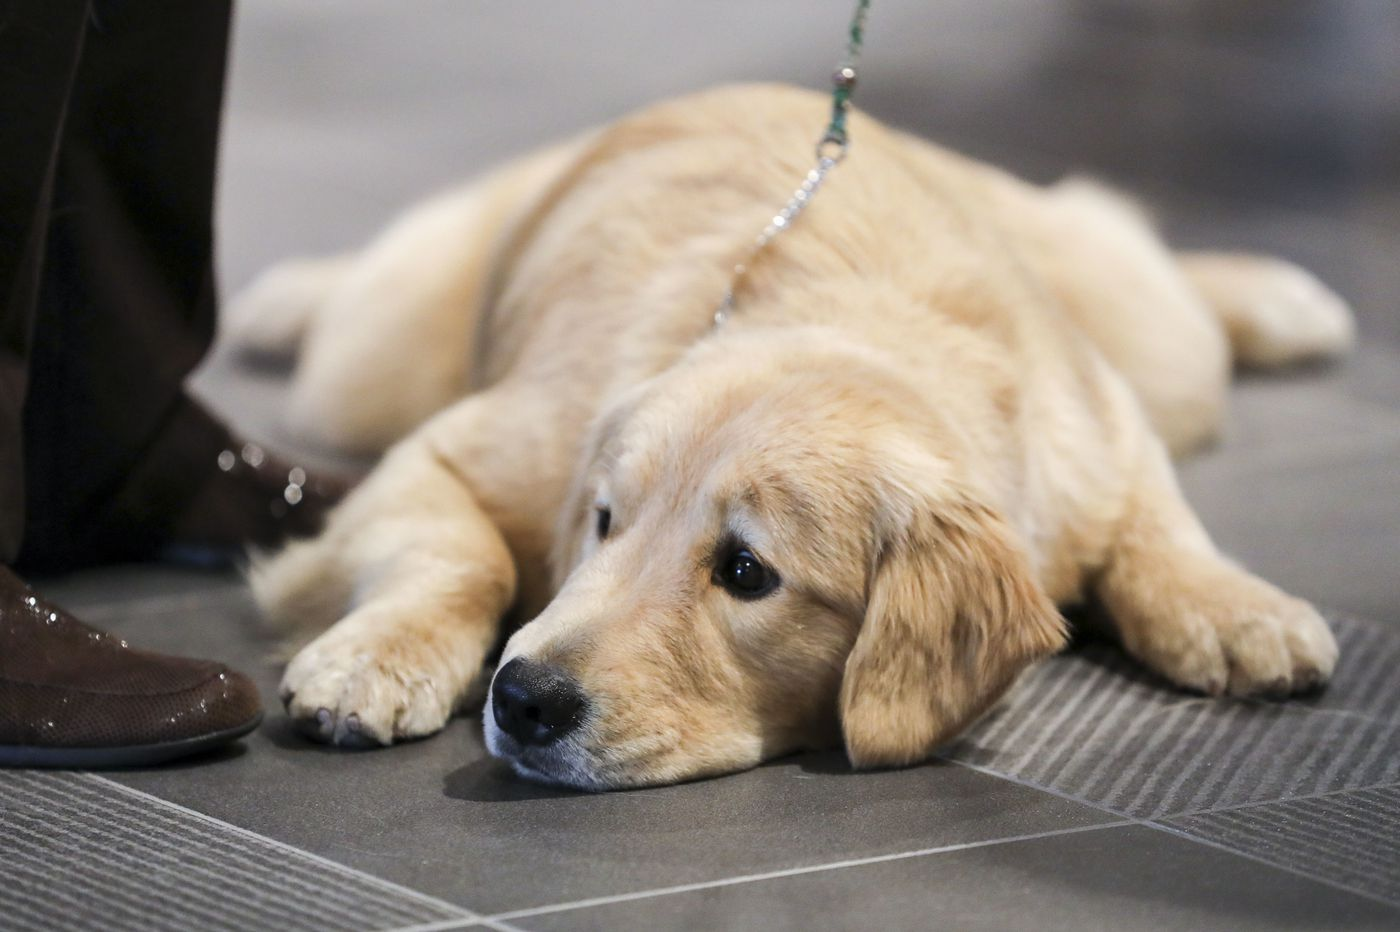 Pet 2,080 dogs at Philadelphia's National Dog Show this weekend